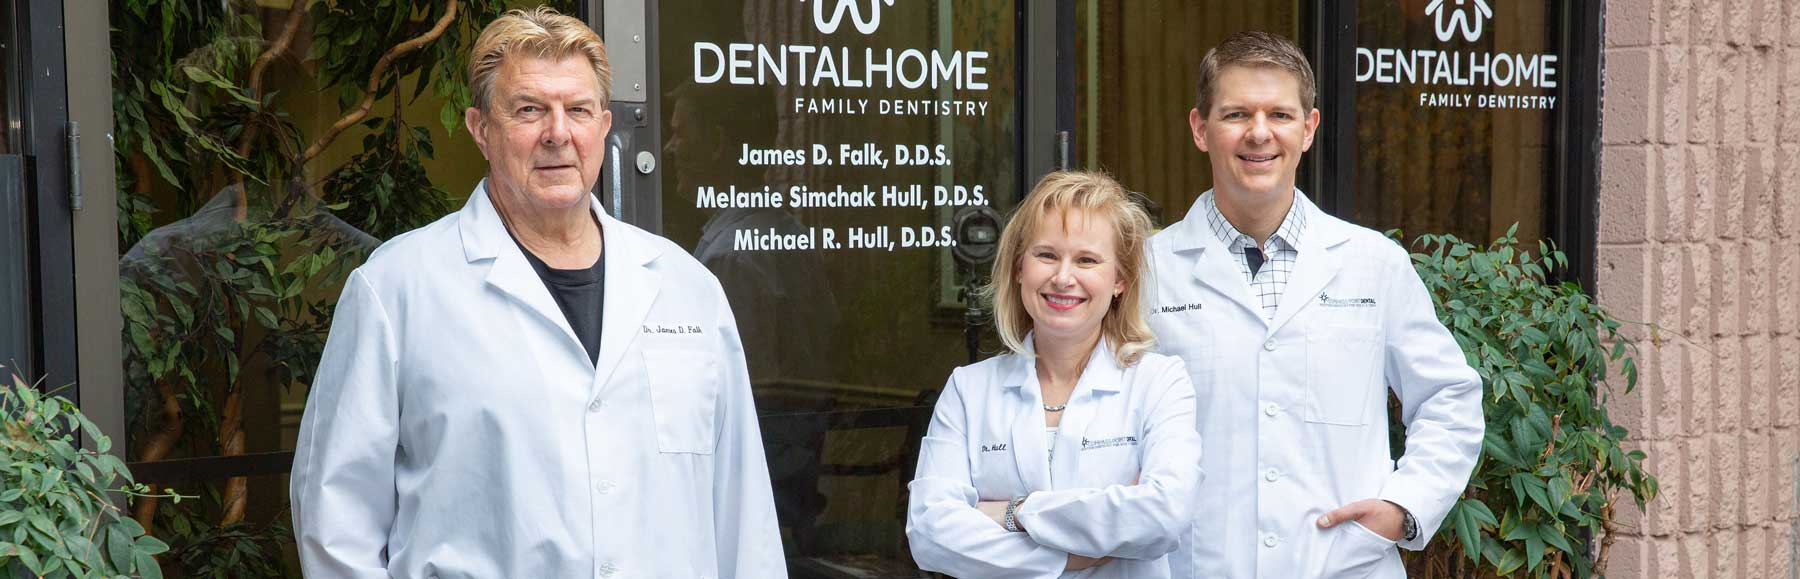 dental home family dentistry doctors